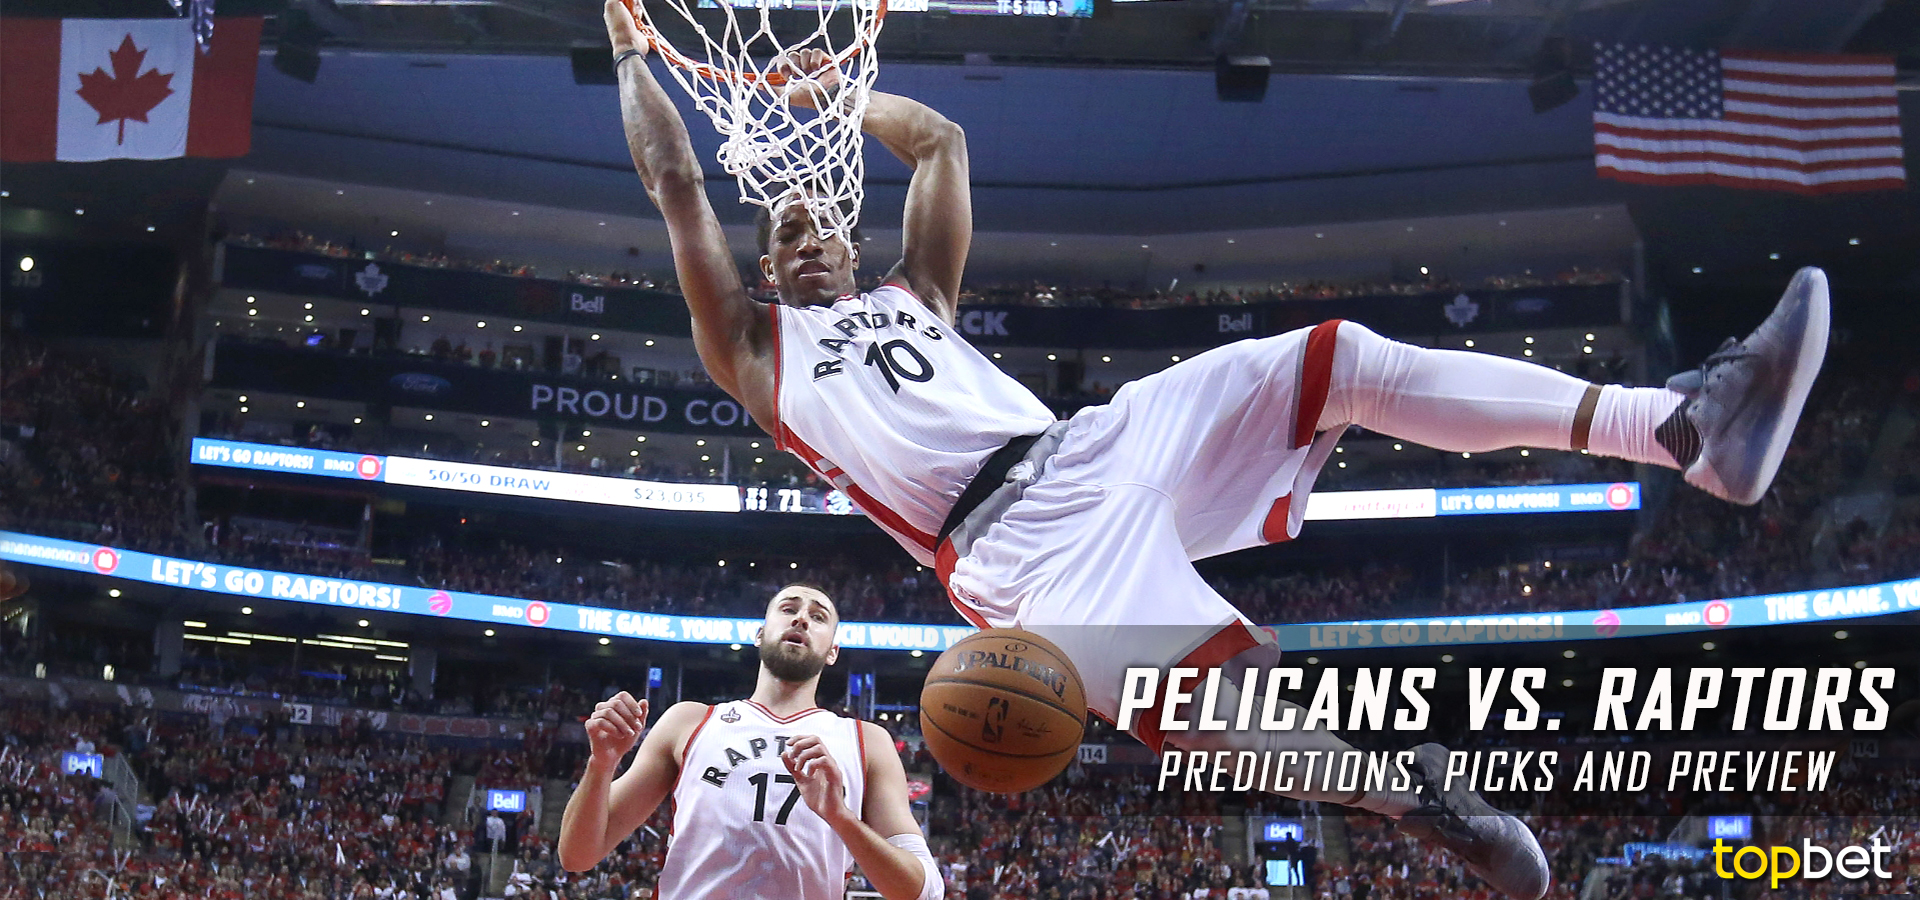 Raptors News: Pelicans Vs Raptors Predictions And Preview